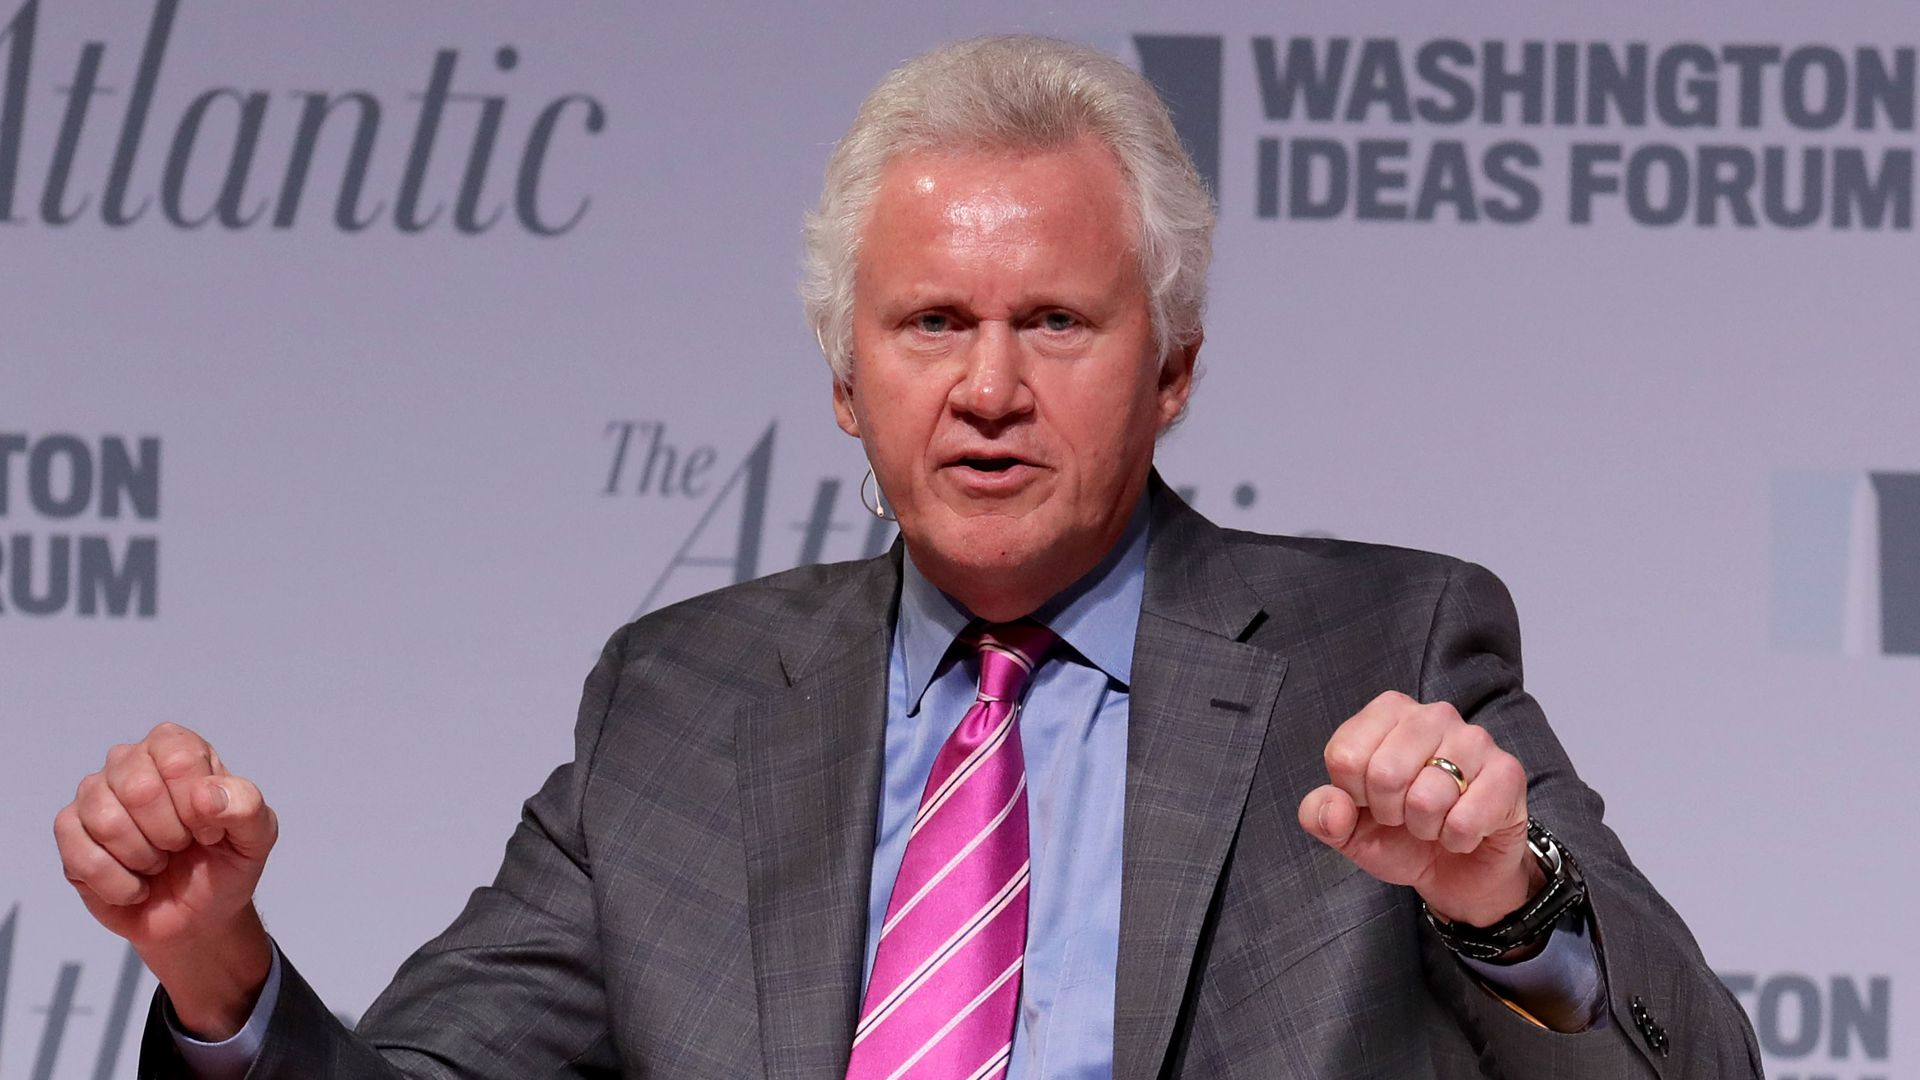 Former GE CEO Jeff Immelt speaks at a conference.